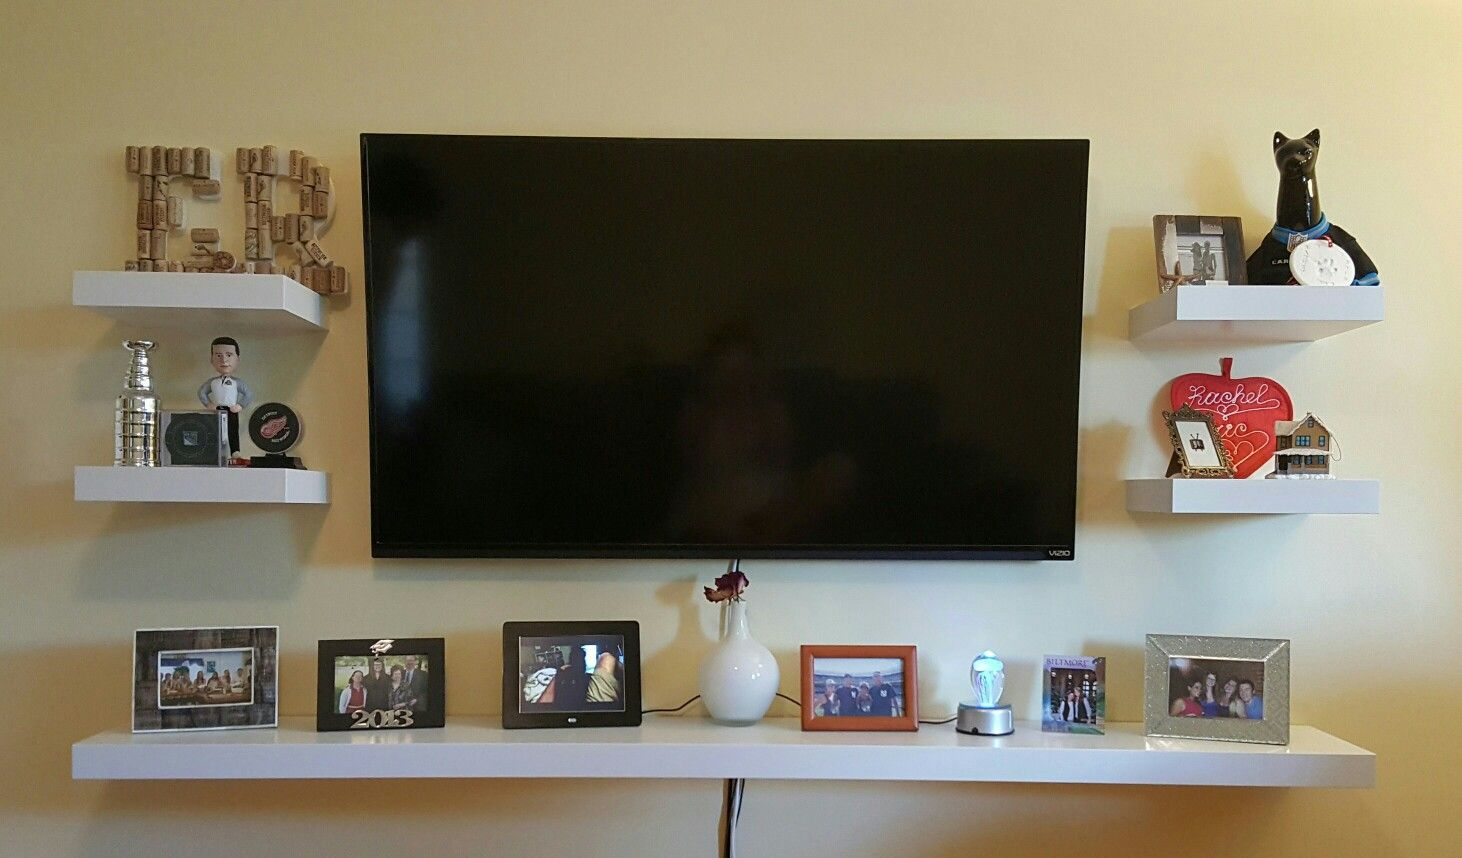 Tv On The Wall Ideas 18 Chic And Modern Tv Wall Mount Ideas For Living Room  Mounted